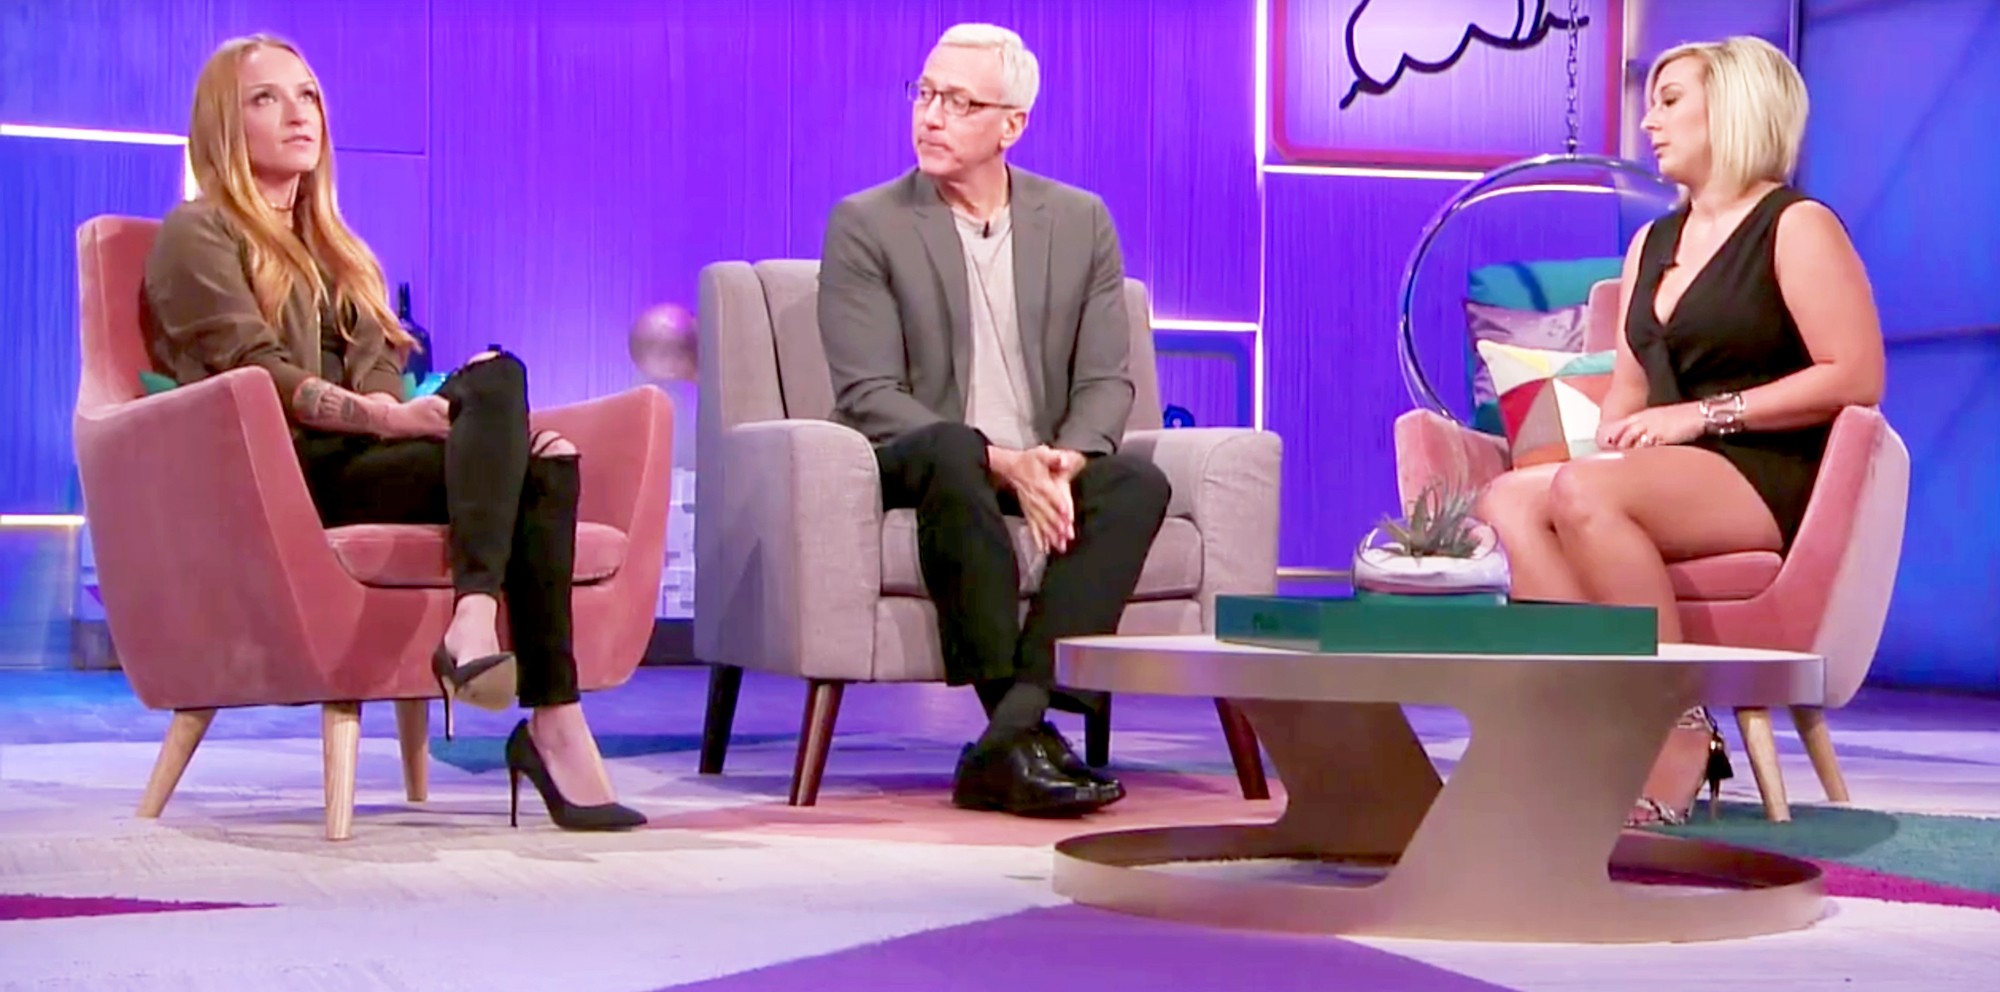 Amber celebrity rehab with dr drew